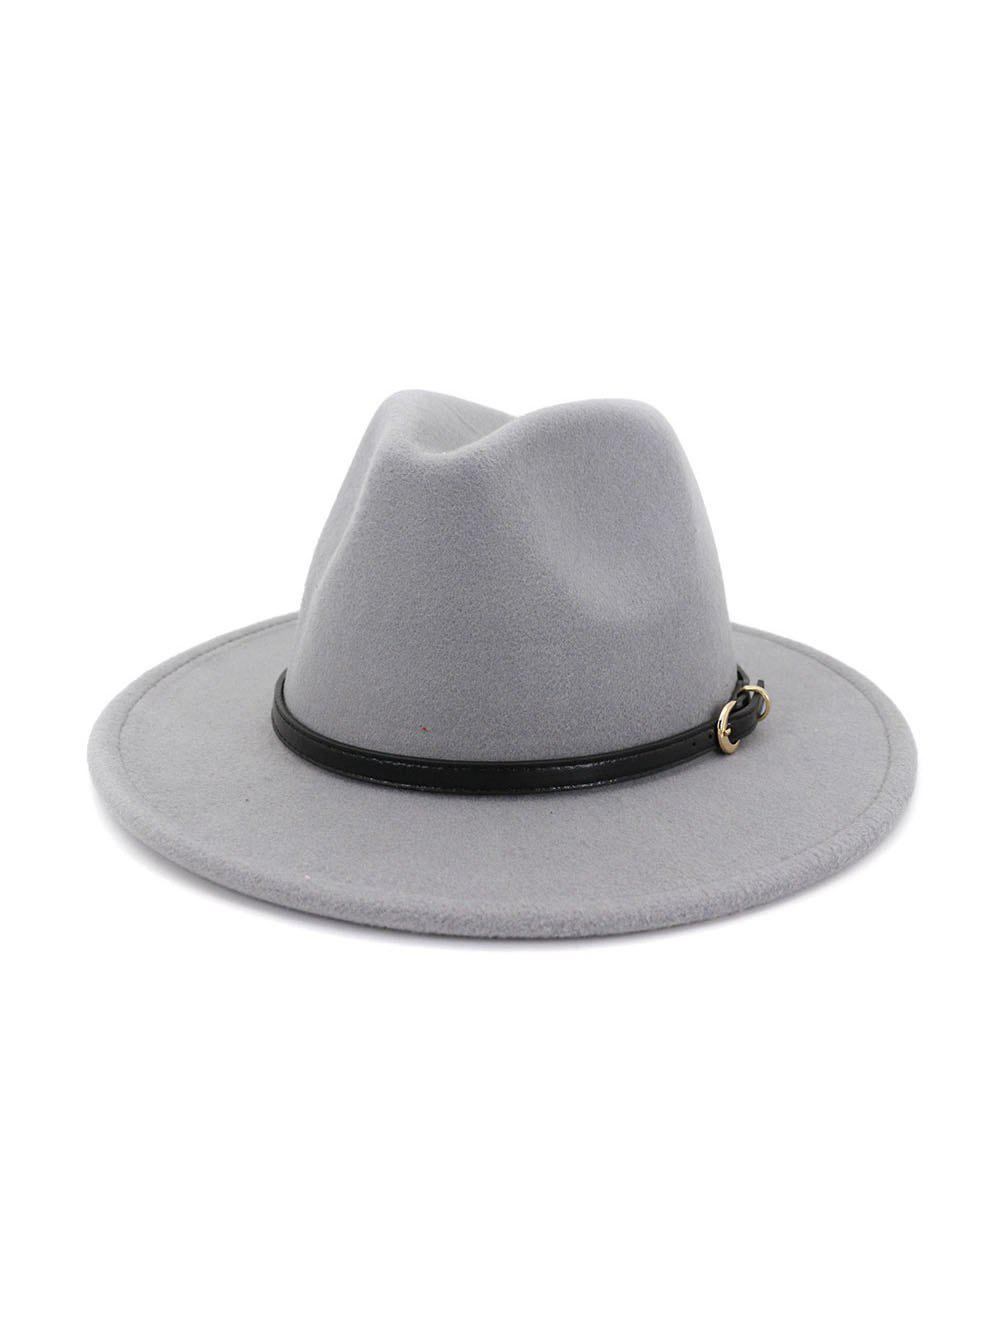 Hot European Jazz Flat-brim Hat